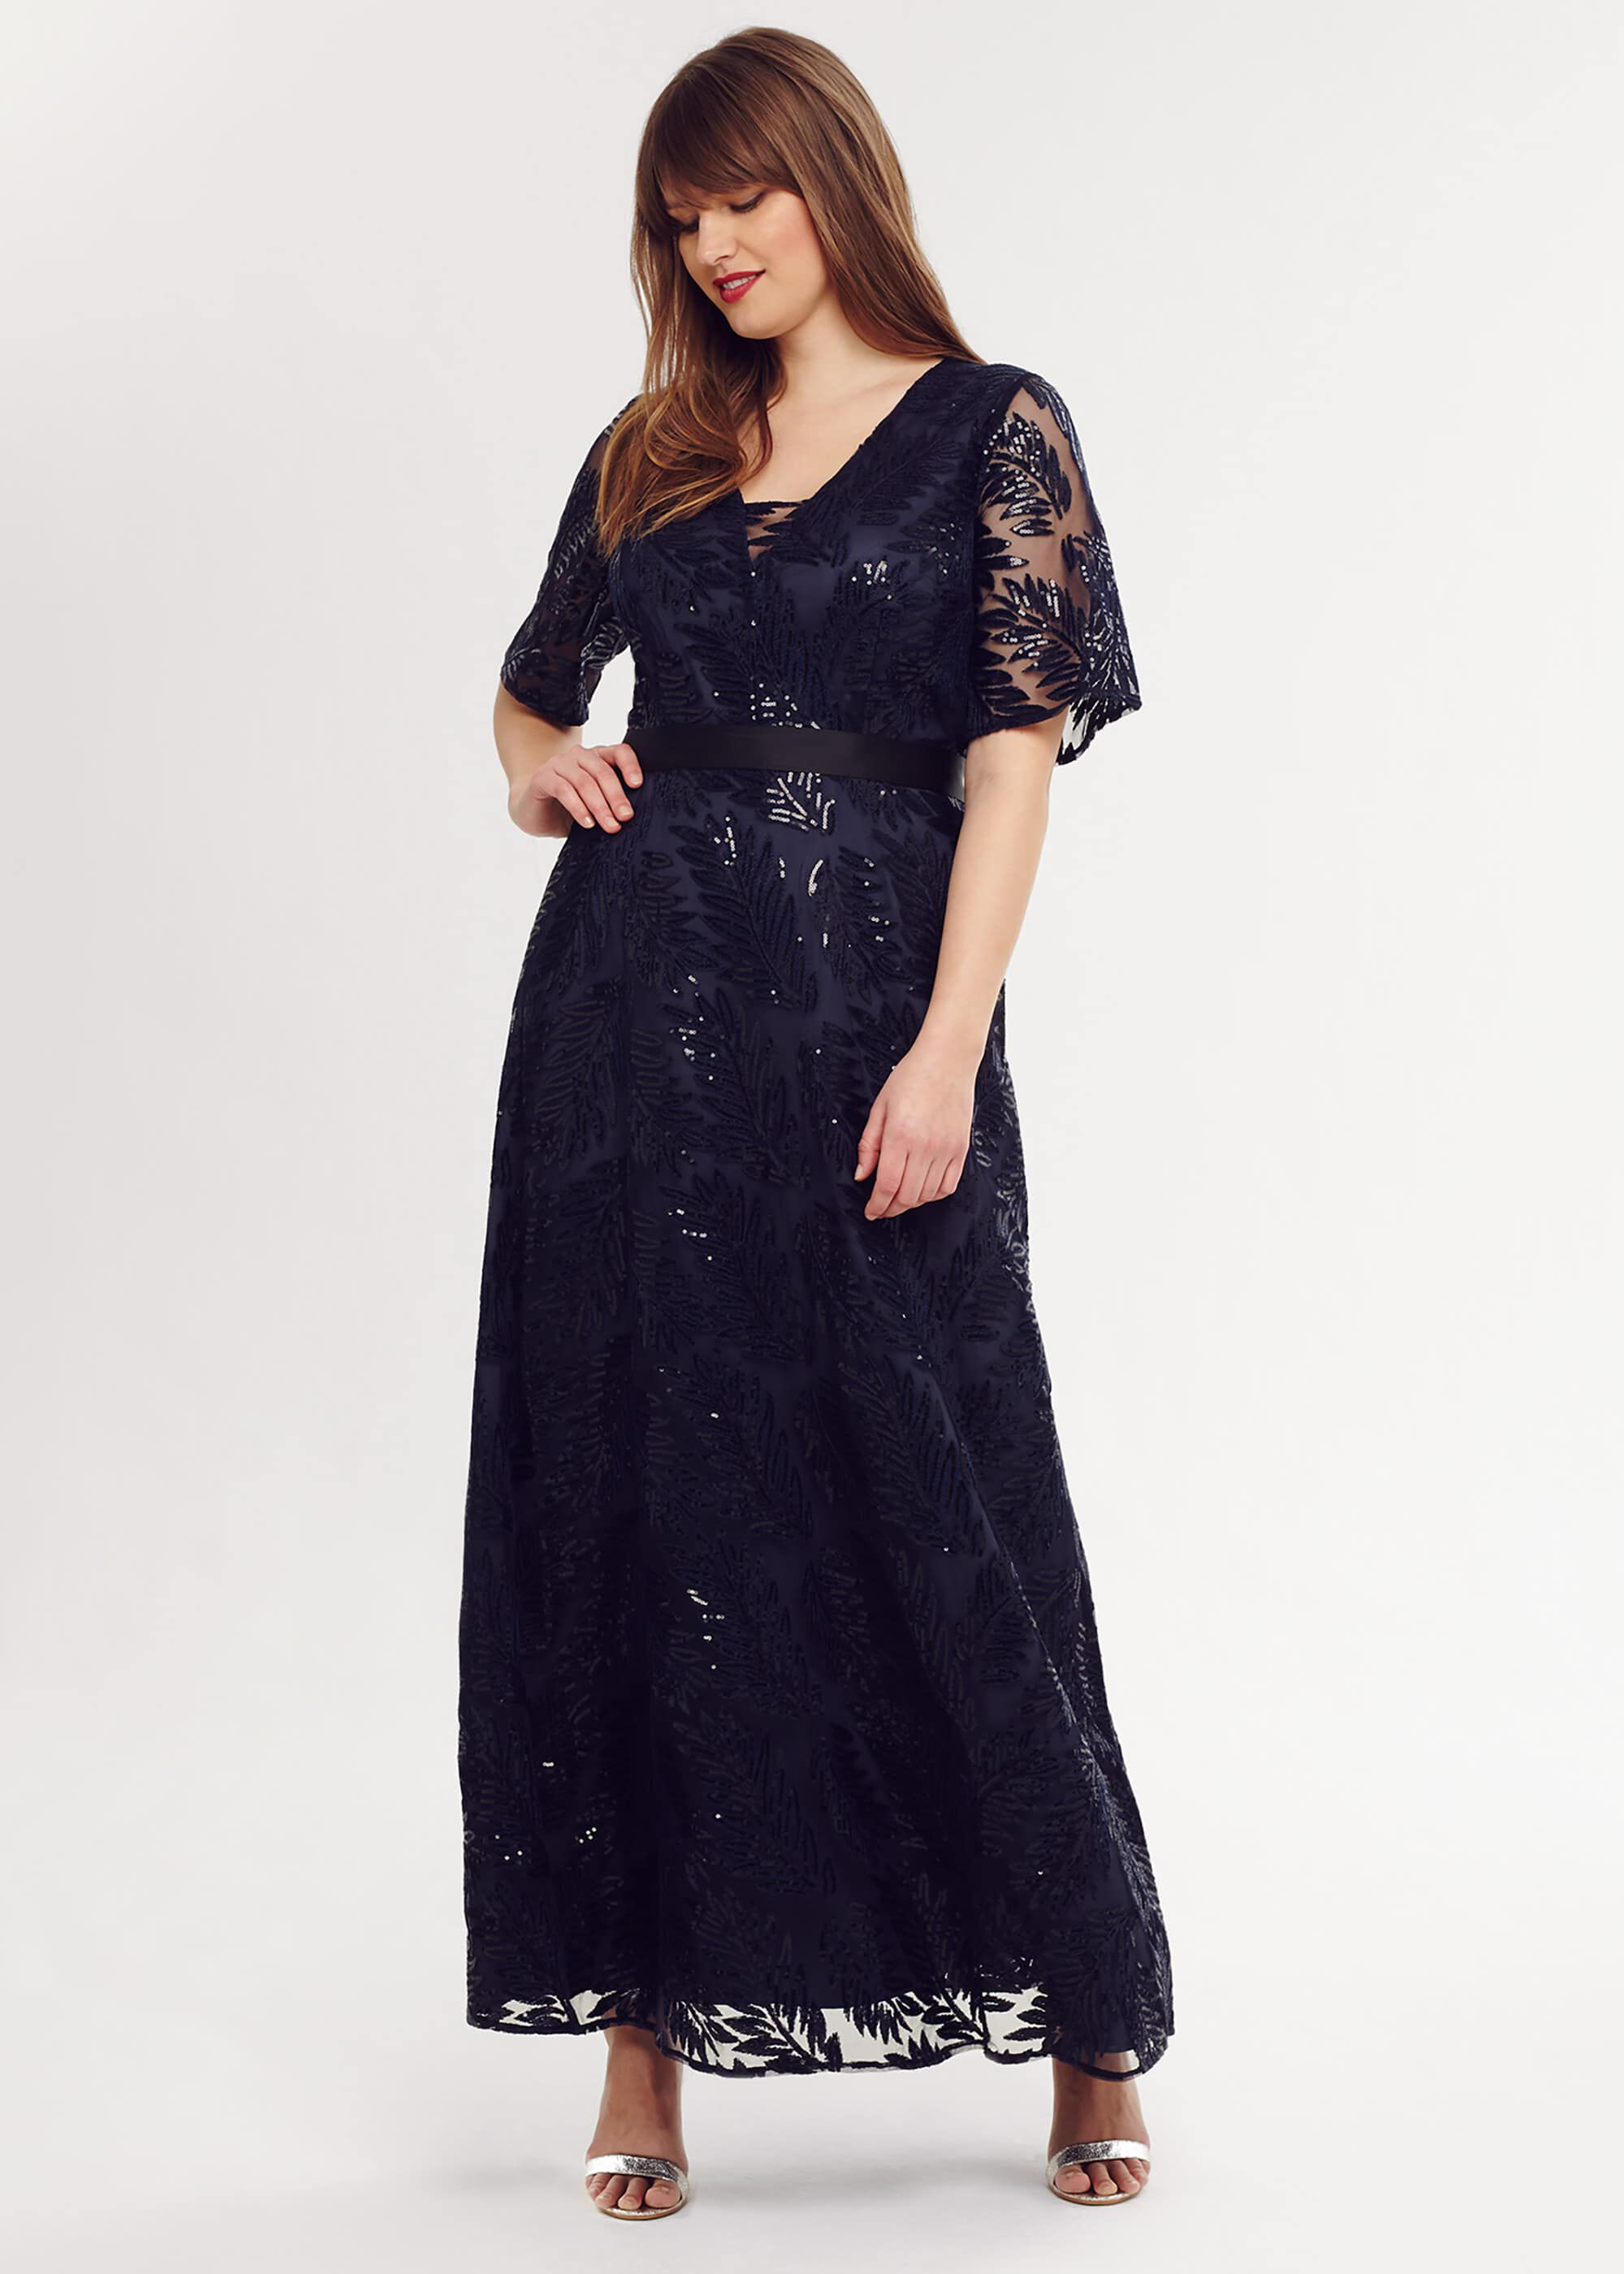 Studio 8 Persephone Sequin Maxi Dress, Blue, Maxi, Occasion Dress